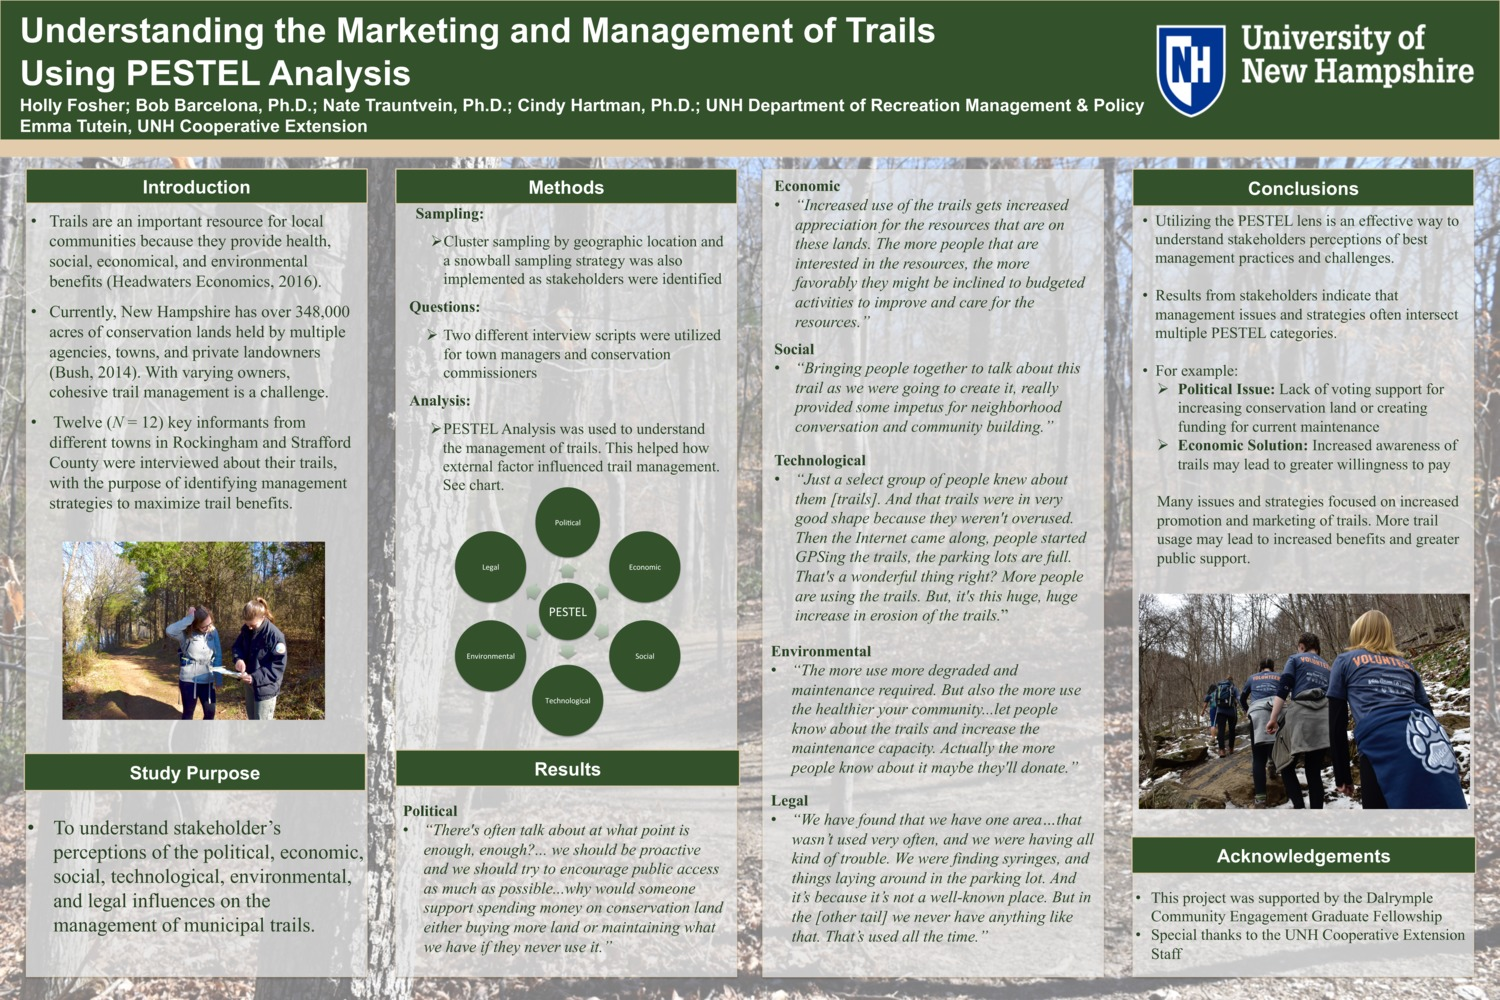 Understanding The Marketing And Management Of Trails Using Pestel Analysis  by hrg33